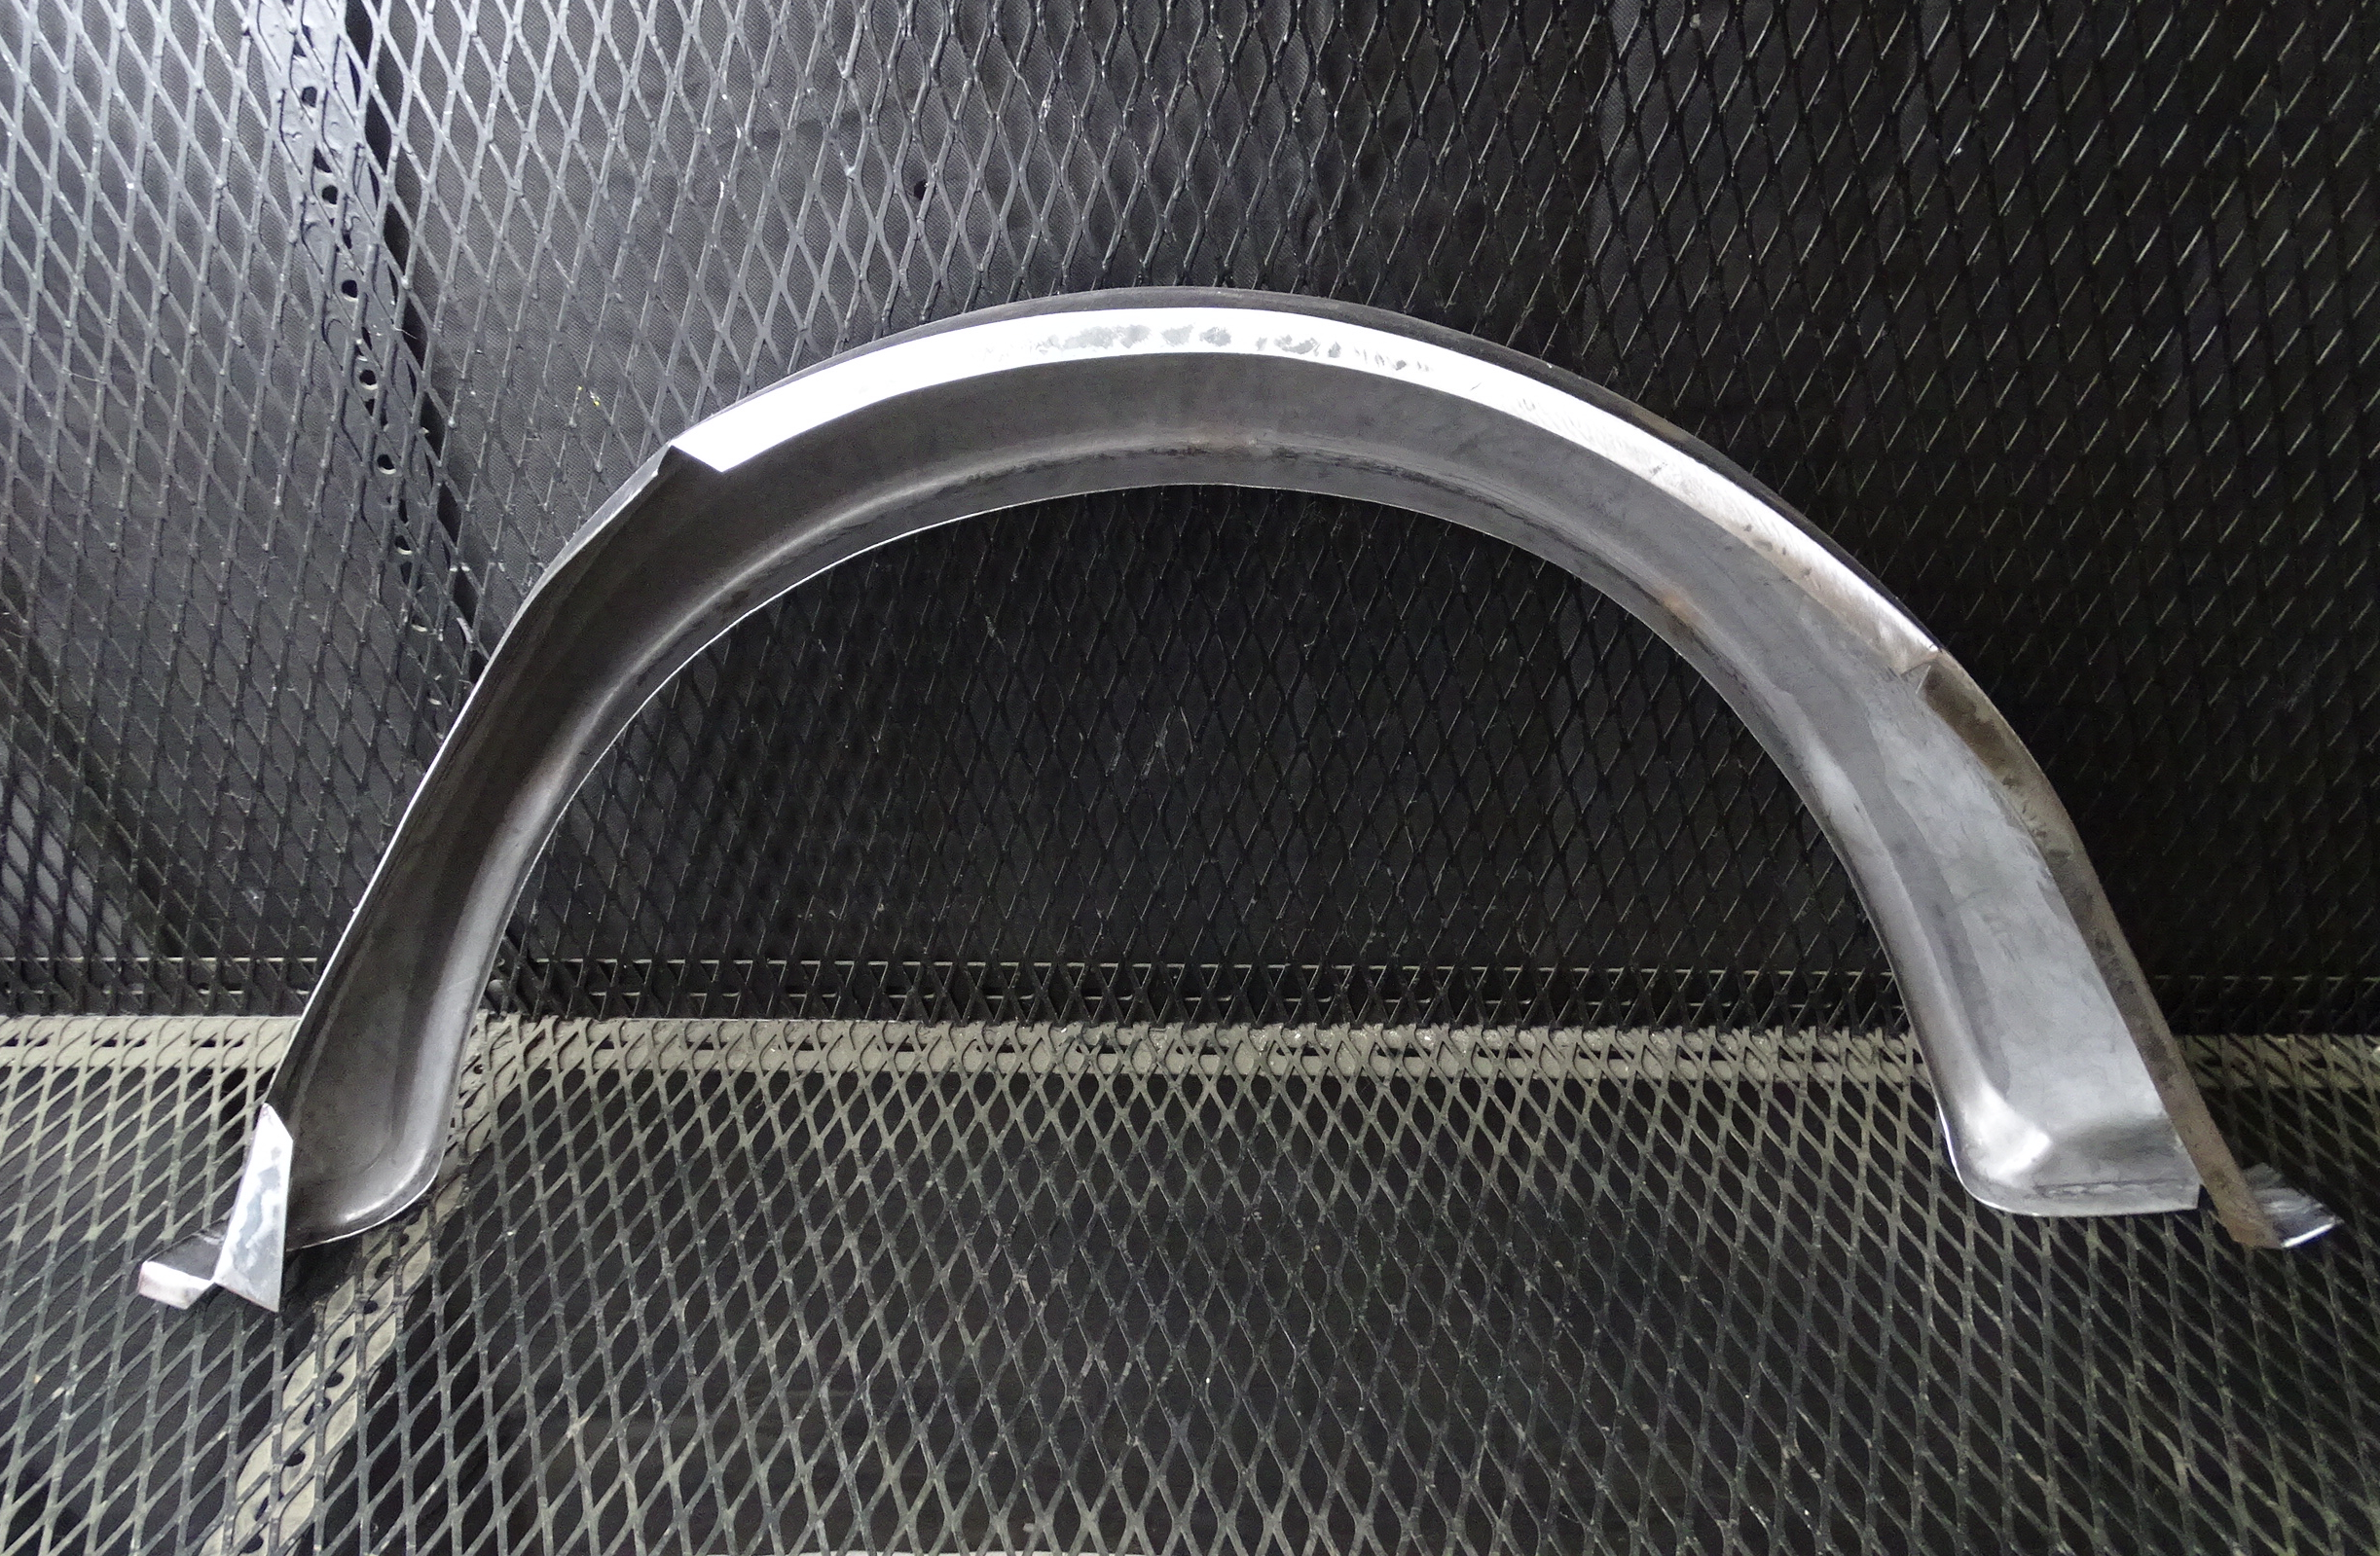 1100 / 1300 right-hand rear outer wheel tub